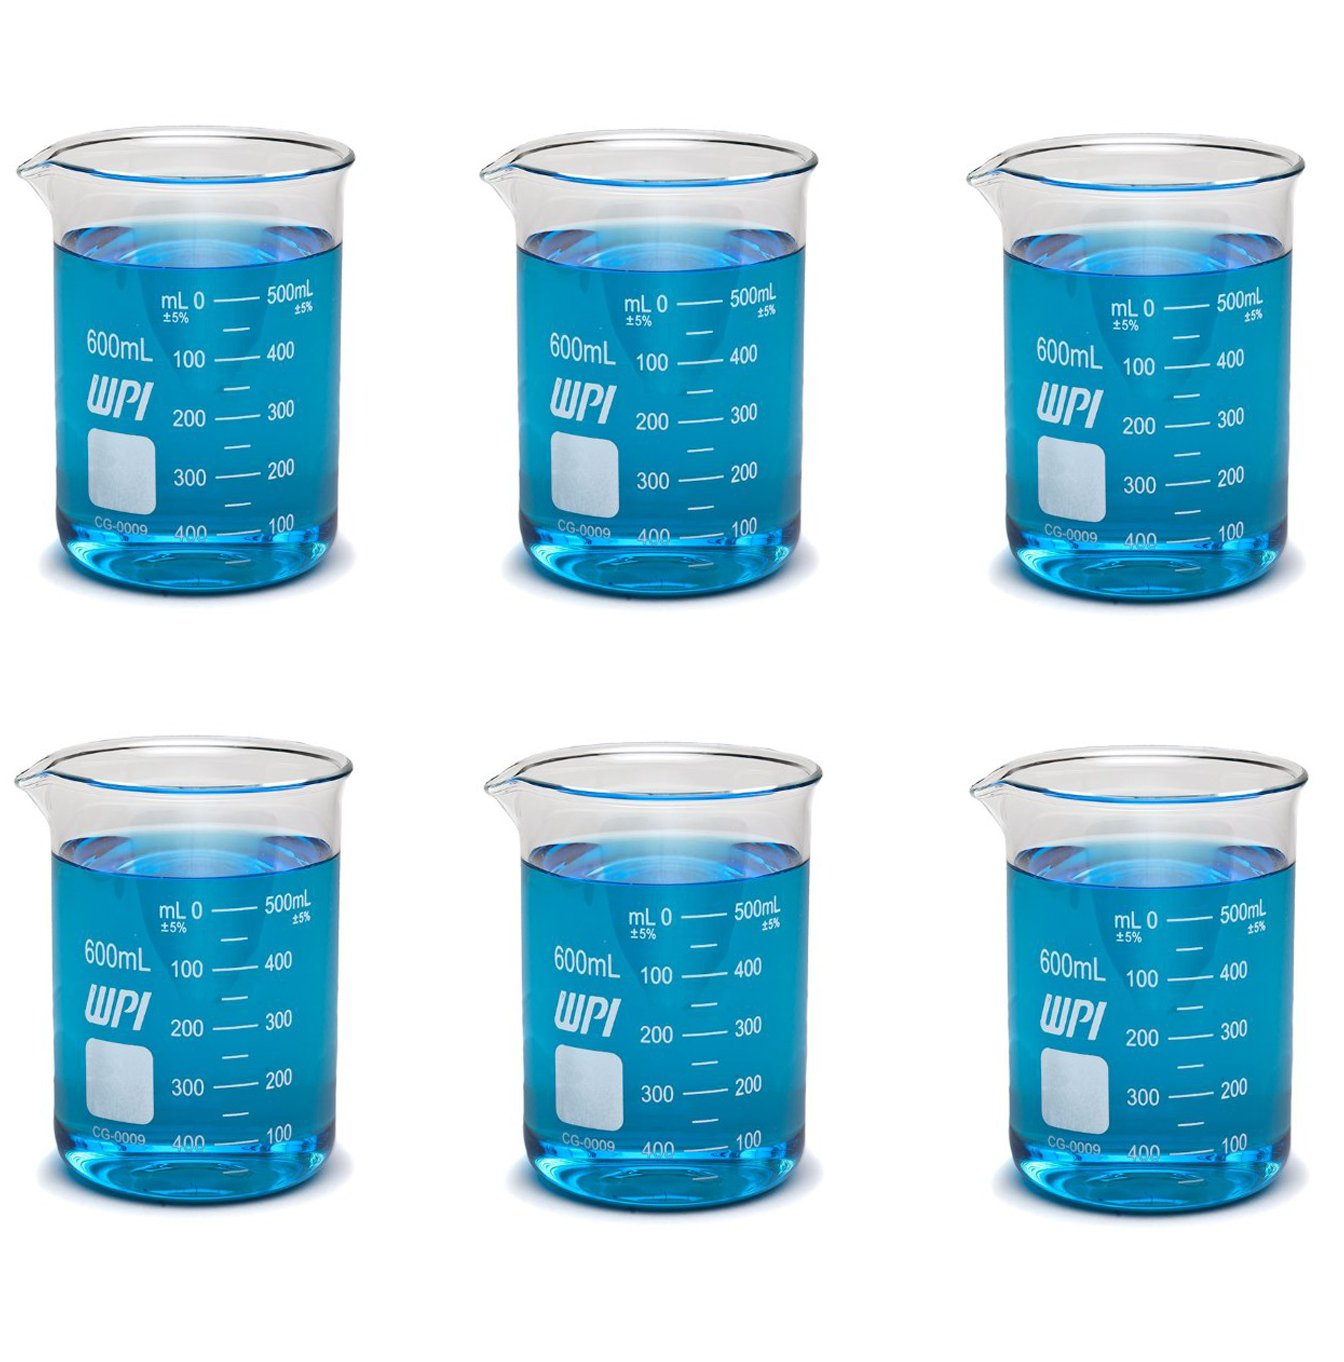 WPI CG-0009 Borosilicate Glass Griffin Beaker with Spout, 600mL Capacity (Pack of 6)